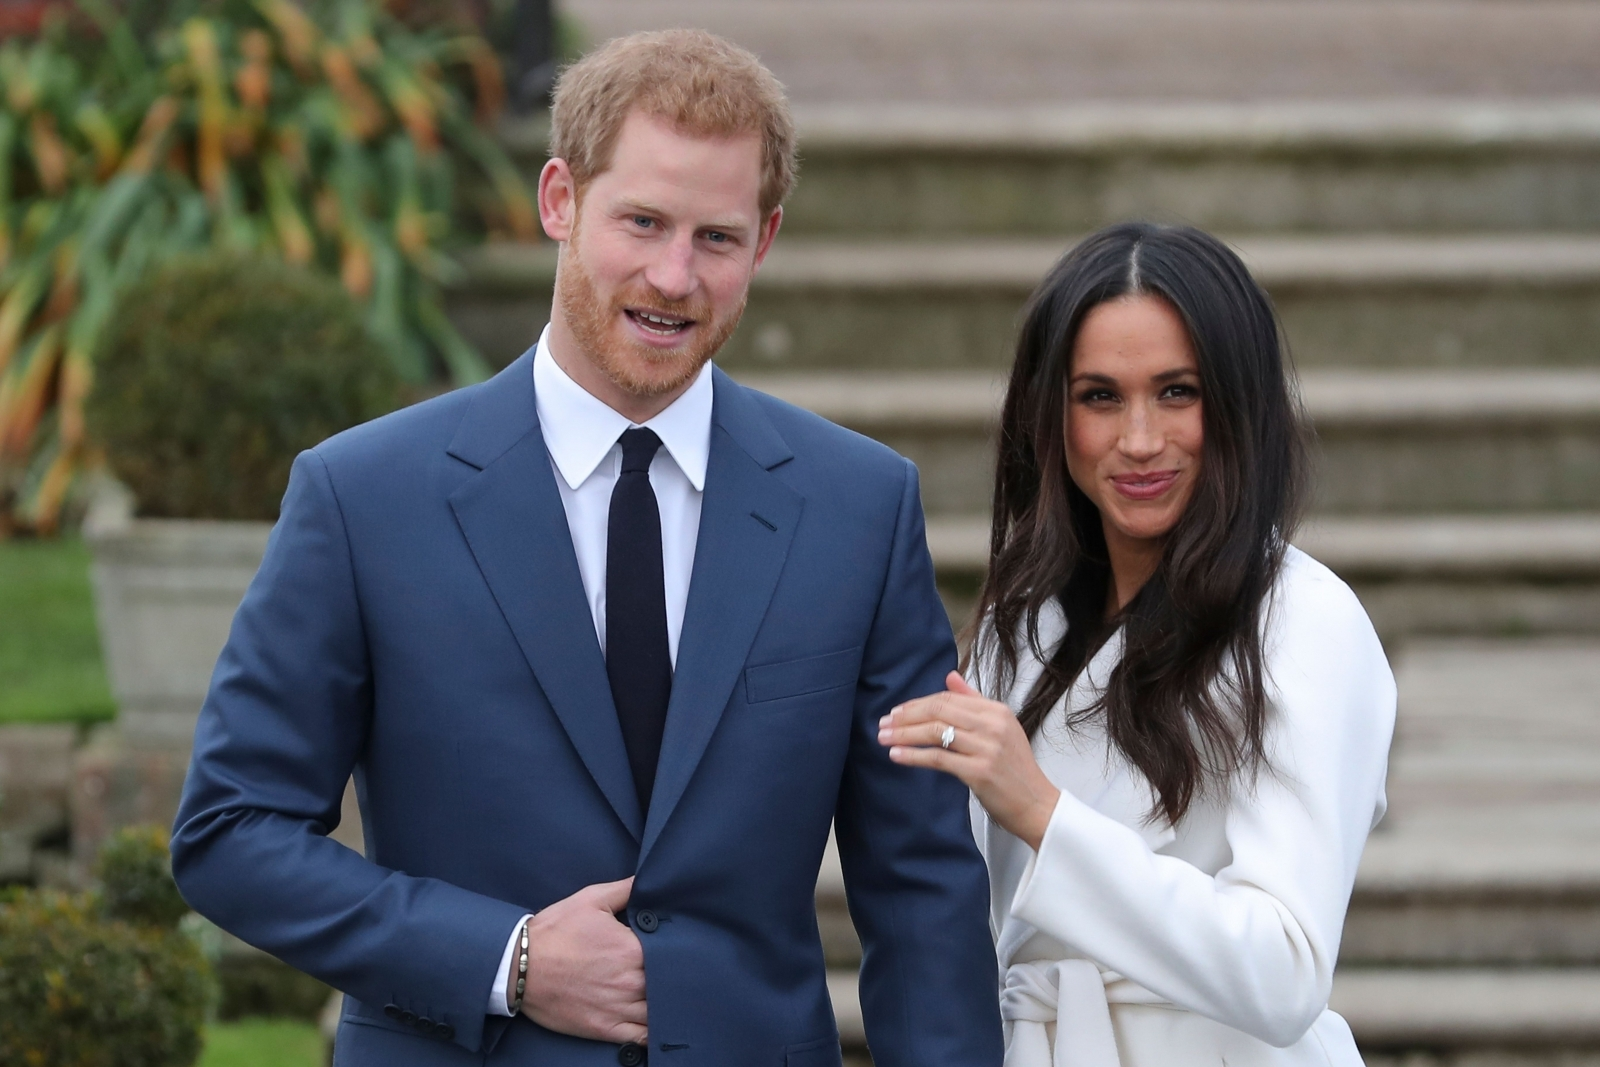 Prince Harry and Meghan Markle Divorce Possible